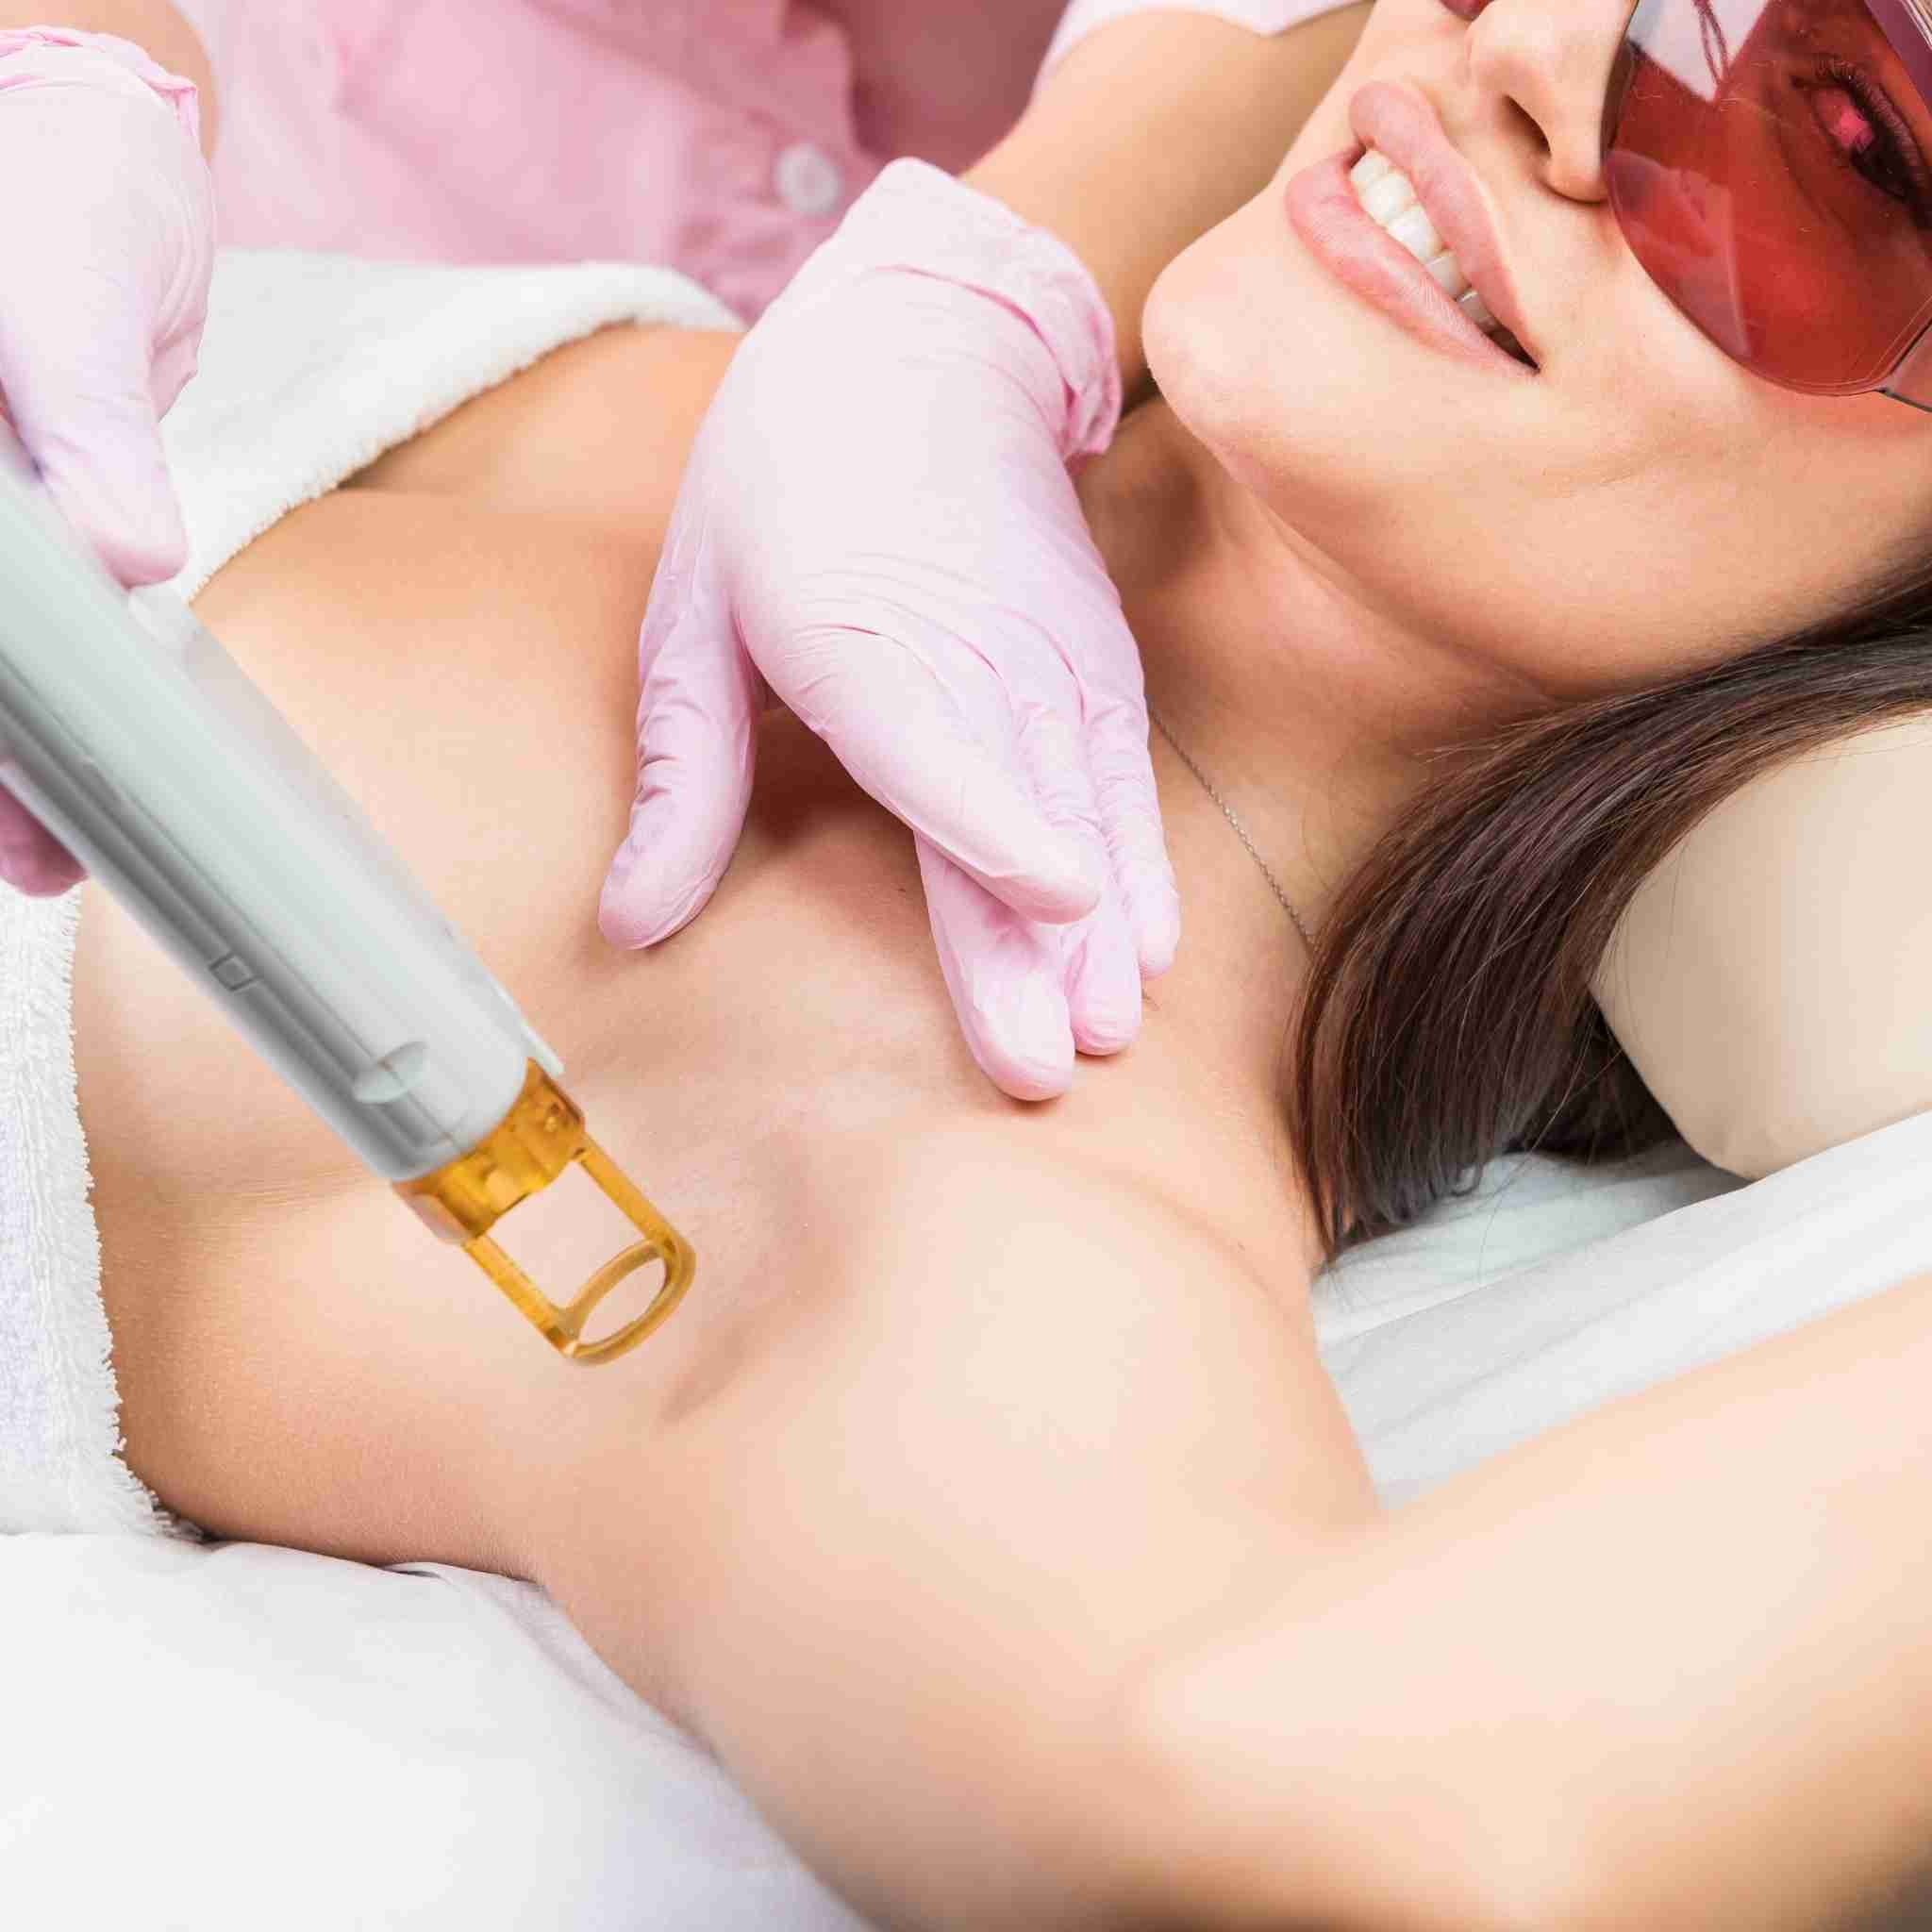 HairFix: Laser Hair Removal Small – Beauty Fix MedSpa